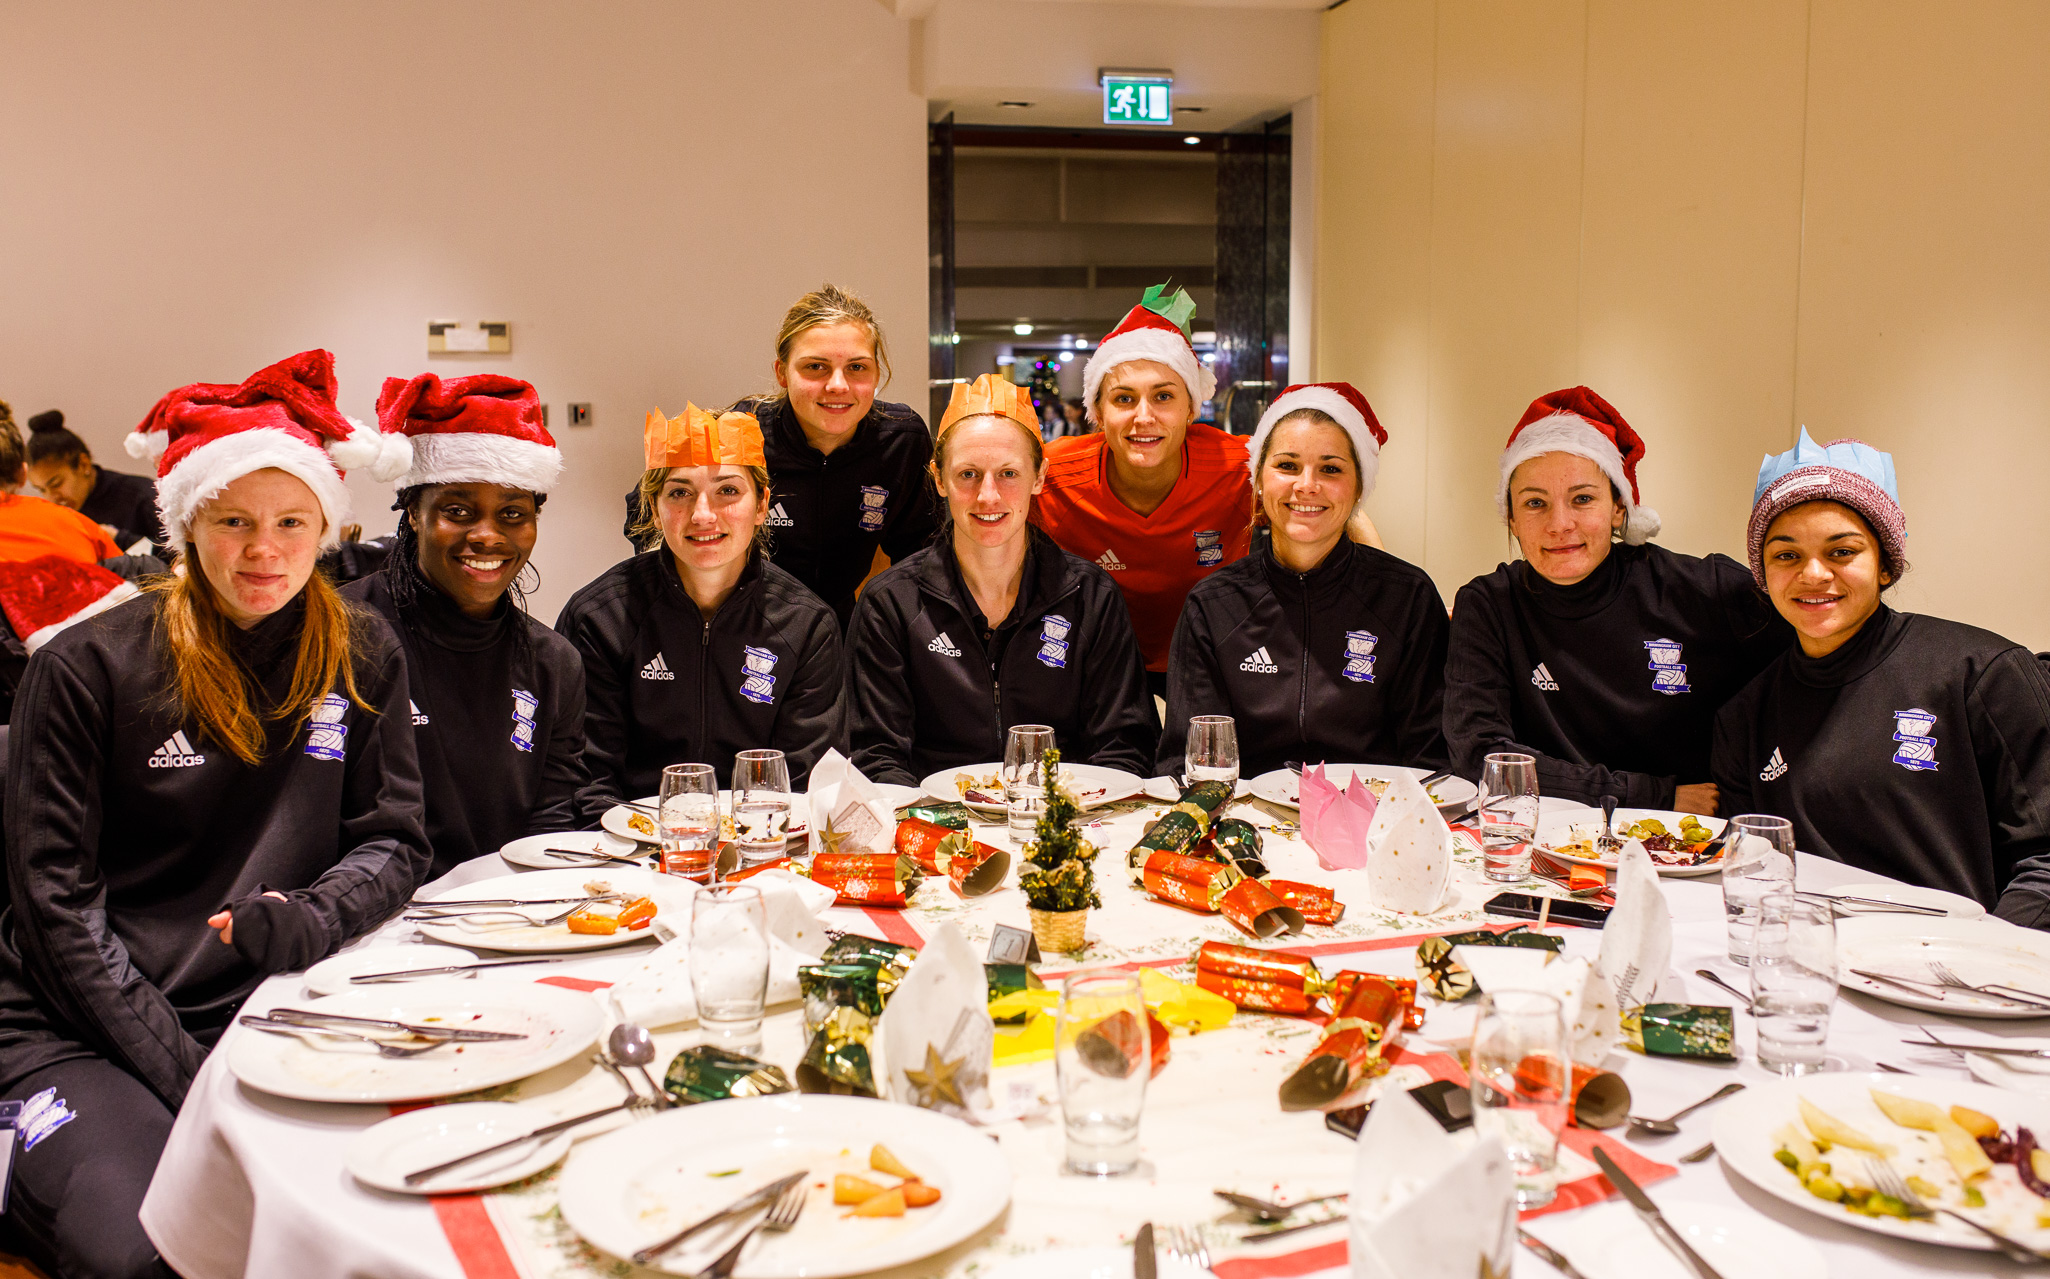 Birmingham City Ladies FC players awaiting their Christmas feast